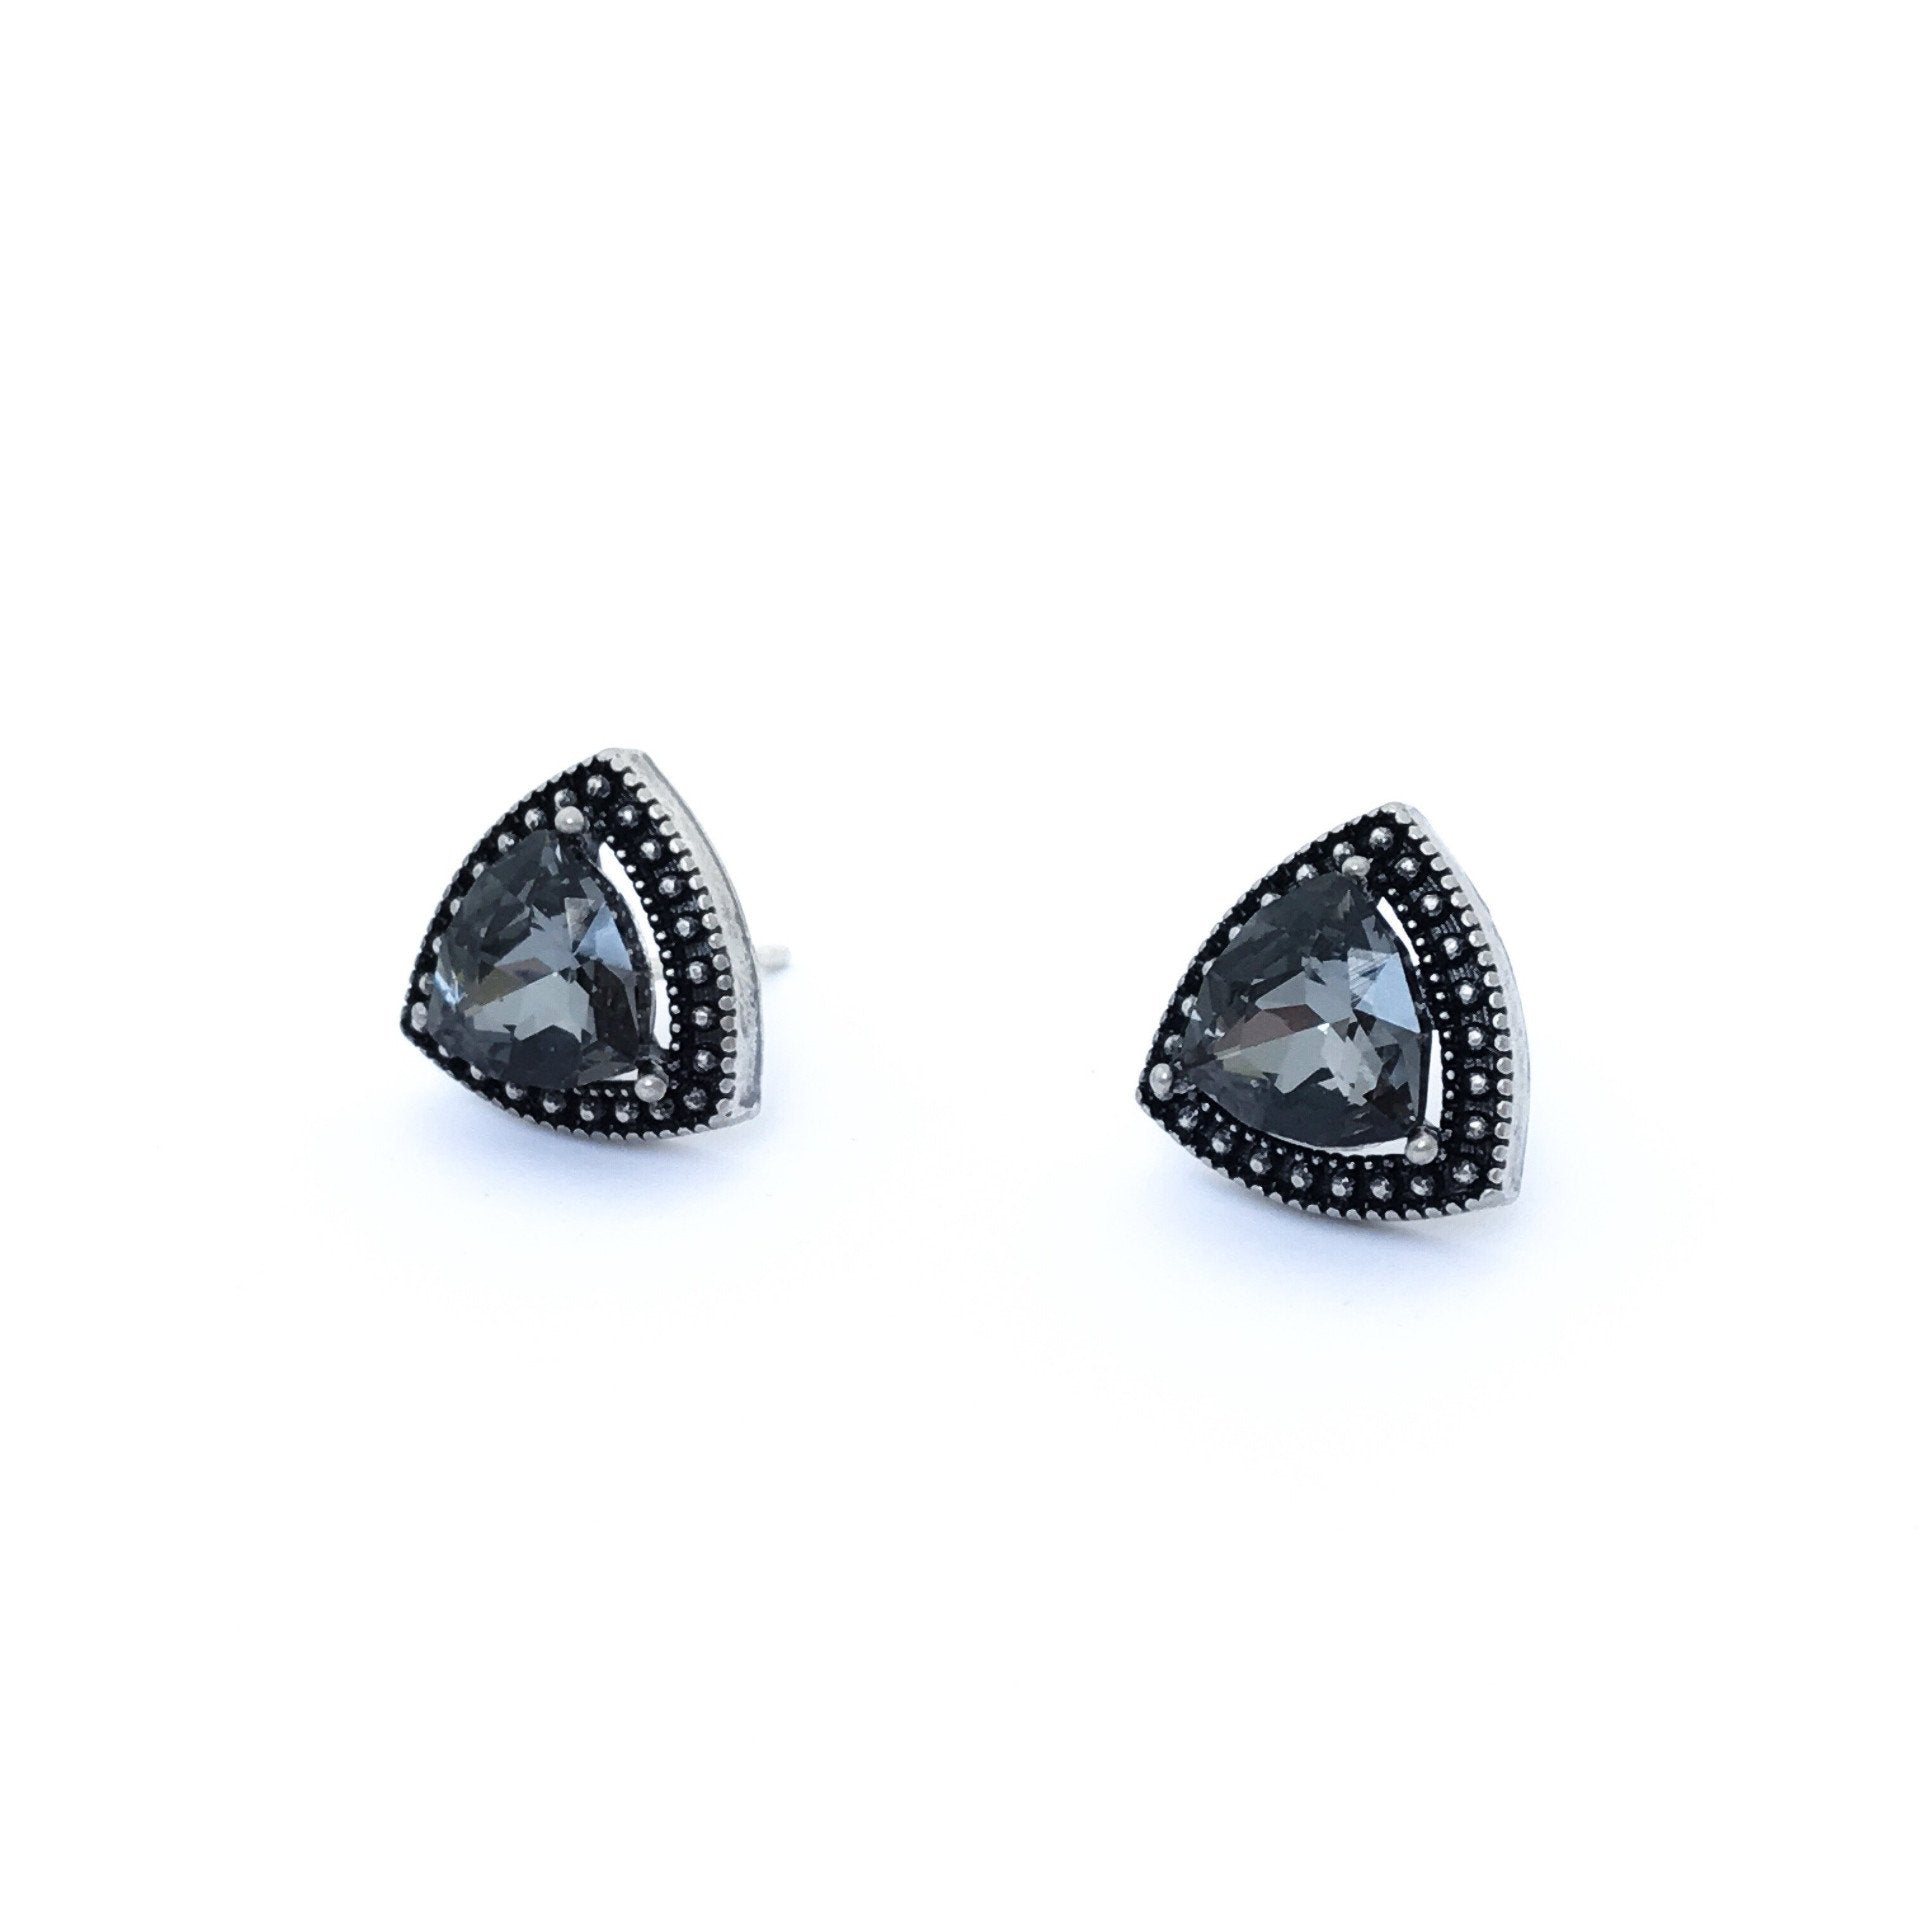 chanel l stud earrings crystal iconic with swan black swarovski cc metal